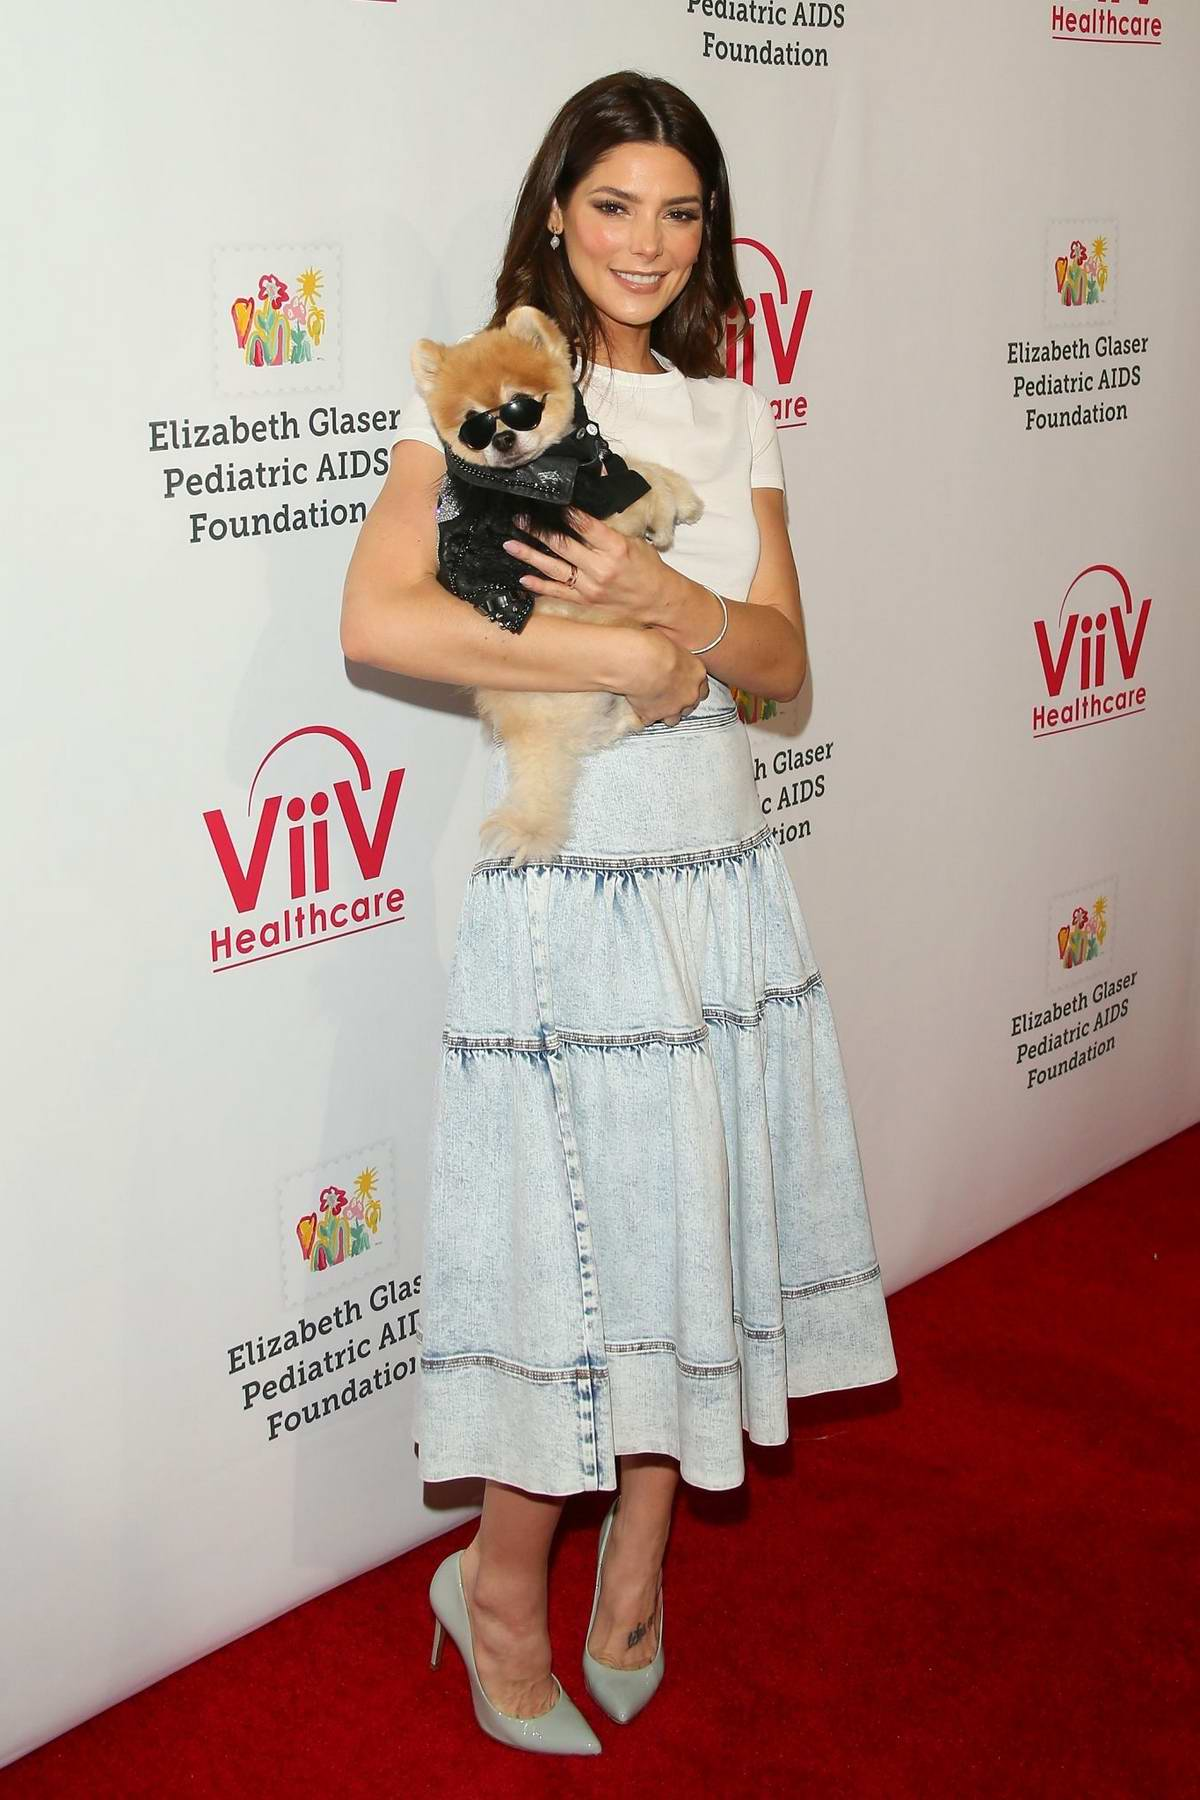 Ashley Greene attends the 30th Annual A Time For Heroes Family Festival at Smashbox Studios in Culver City, California